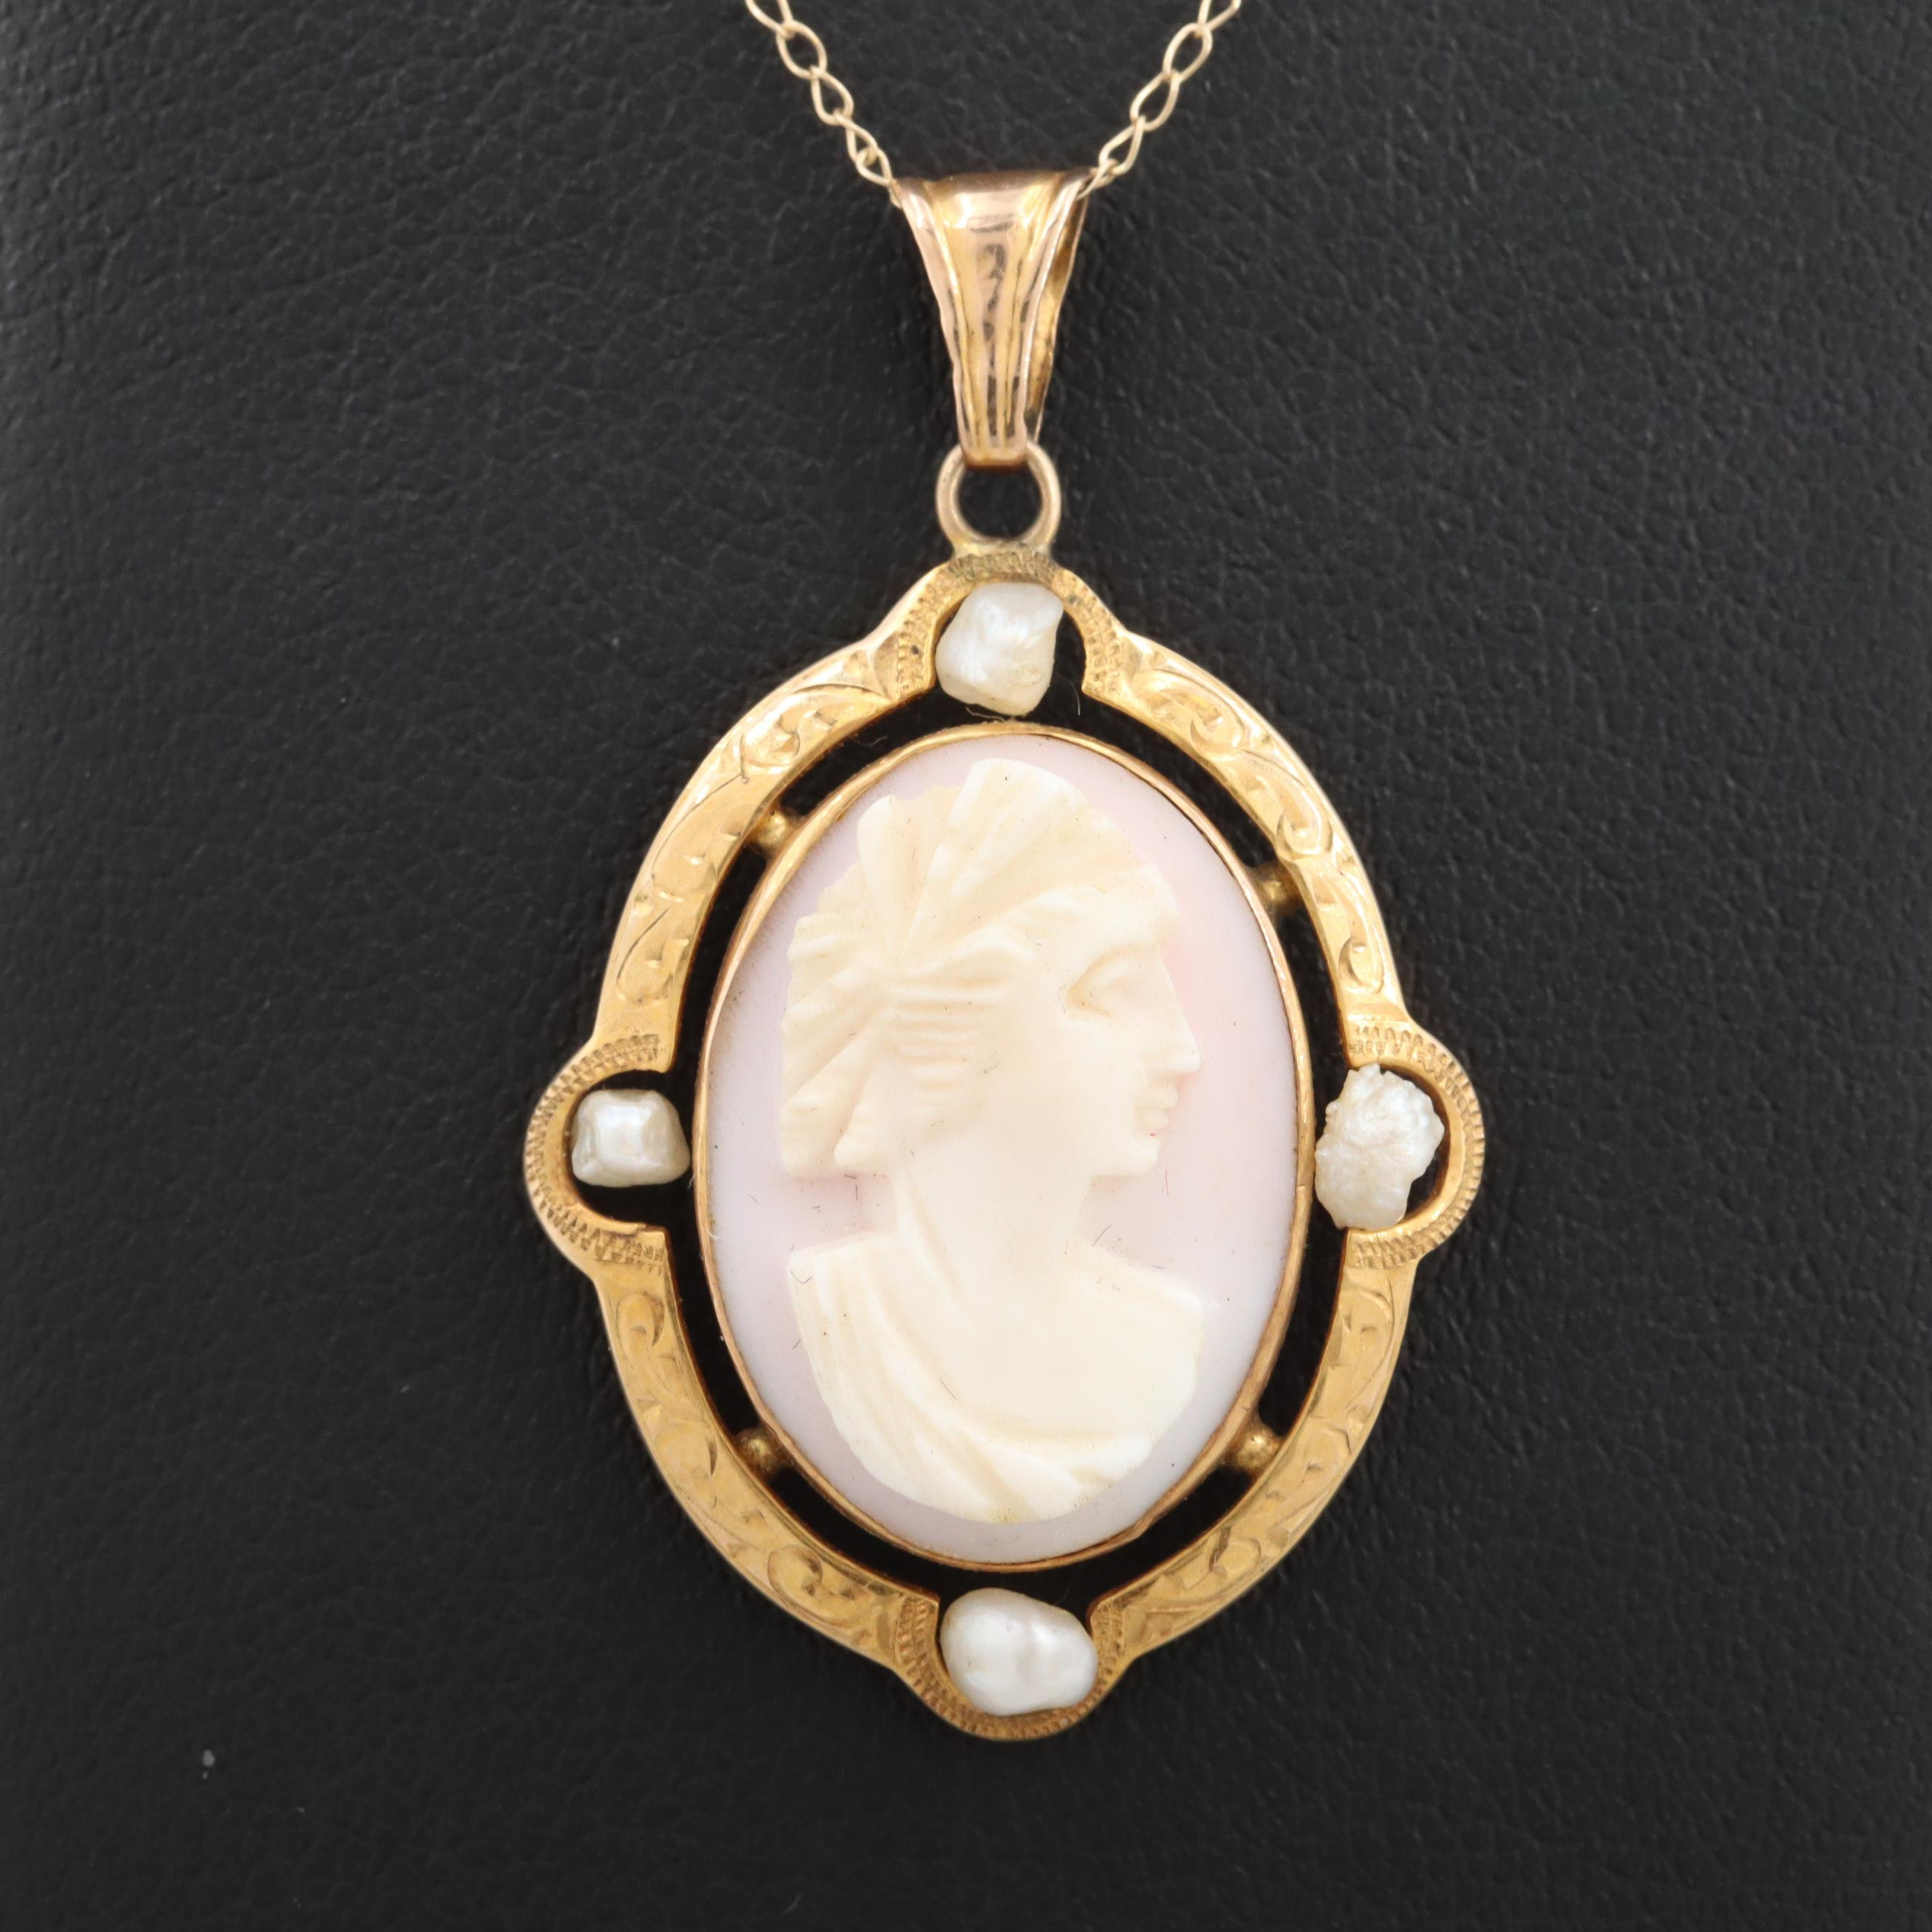 Arts and Crafts 10K Yellow Gold Conch Shell and Cultured Pearl Pendant Necklace